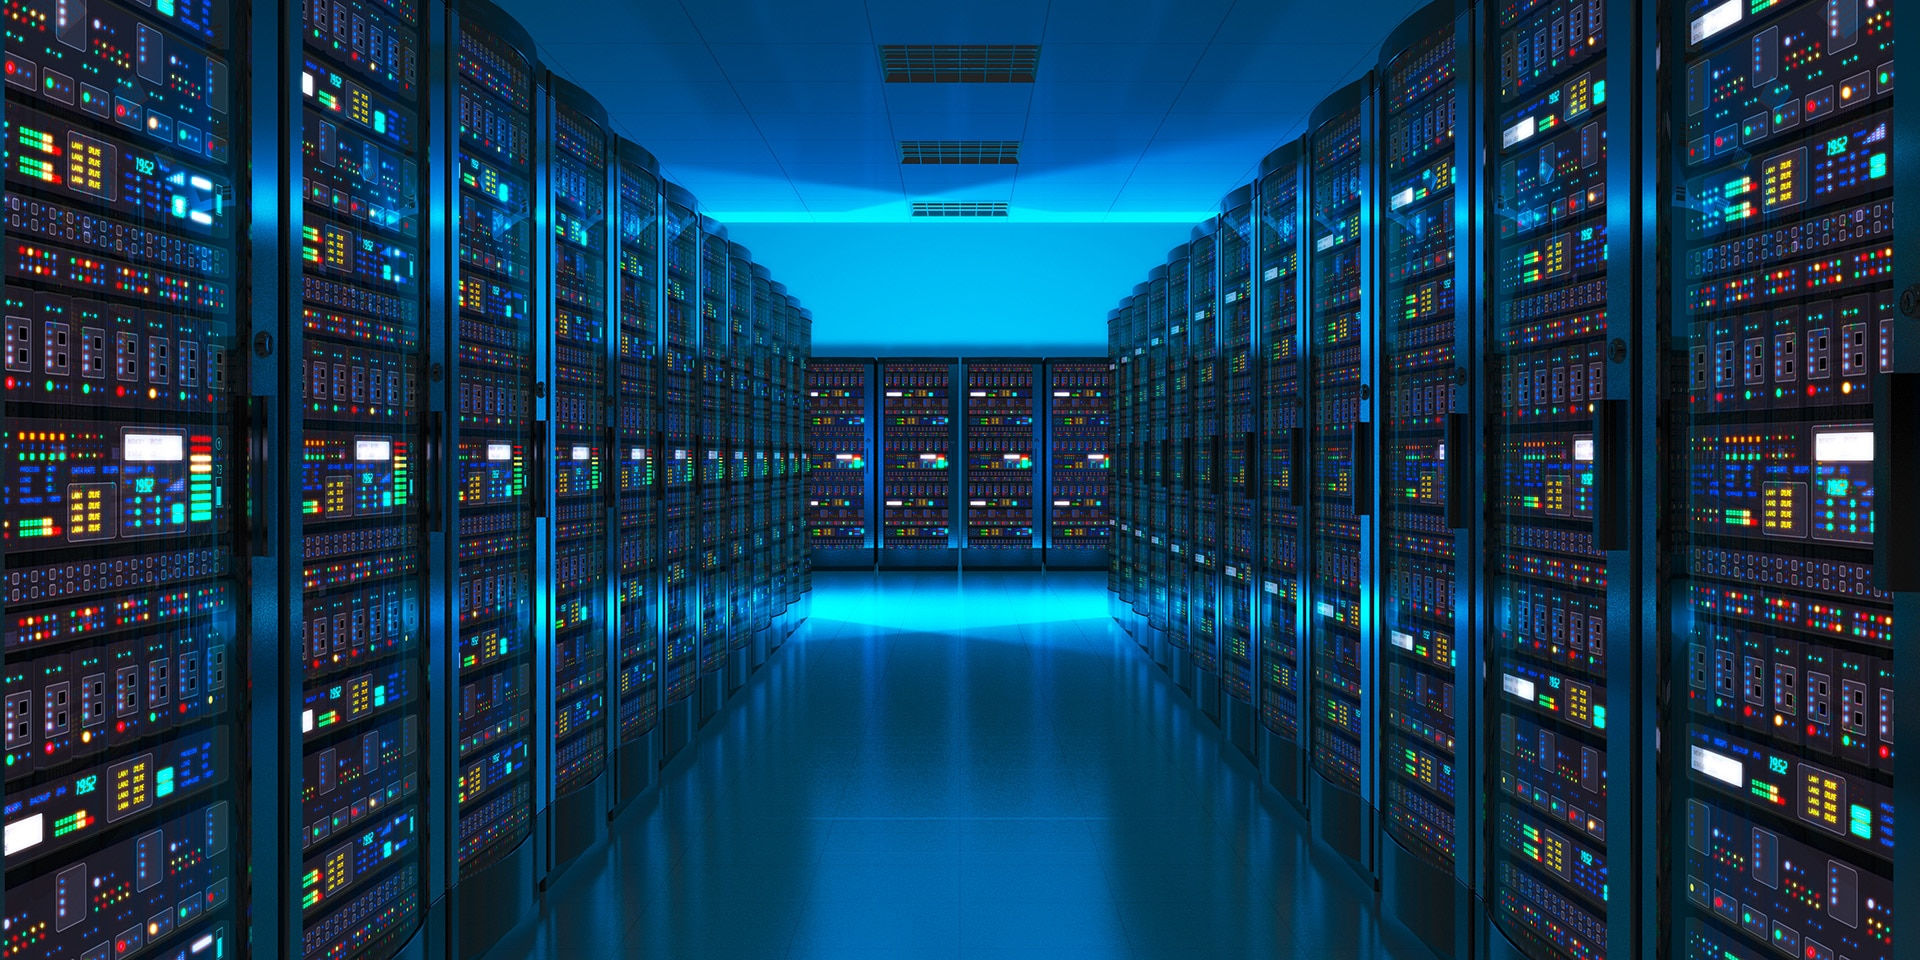 We see a darkened room with a blue glow containing rows of servers on which digital data is stored.